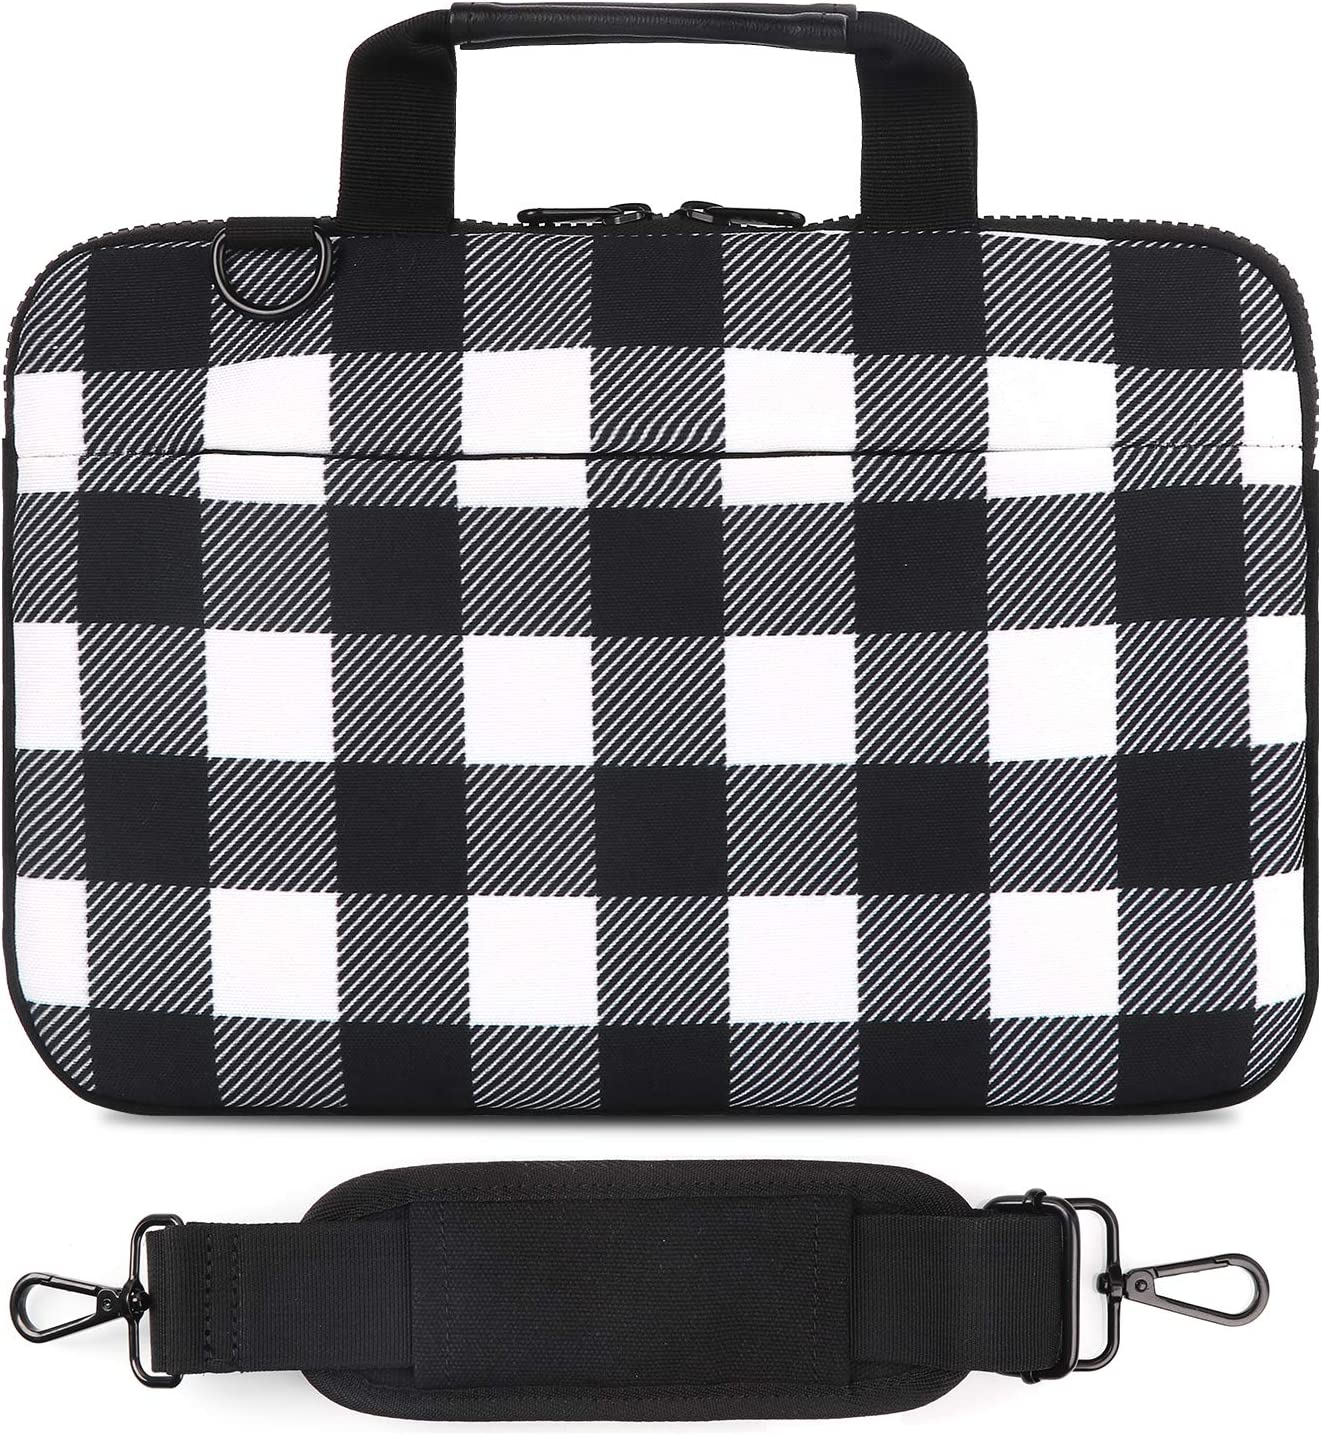 Holilife 13-13.3 Inch Laptop Shoulder Bag, Protective Notebook Messenger Briefcase Compatible with MacBook Air MacBook Pro Ultrabook Chromebook, Checkerboard